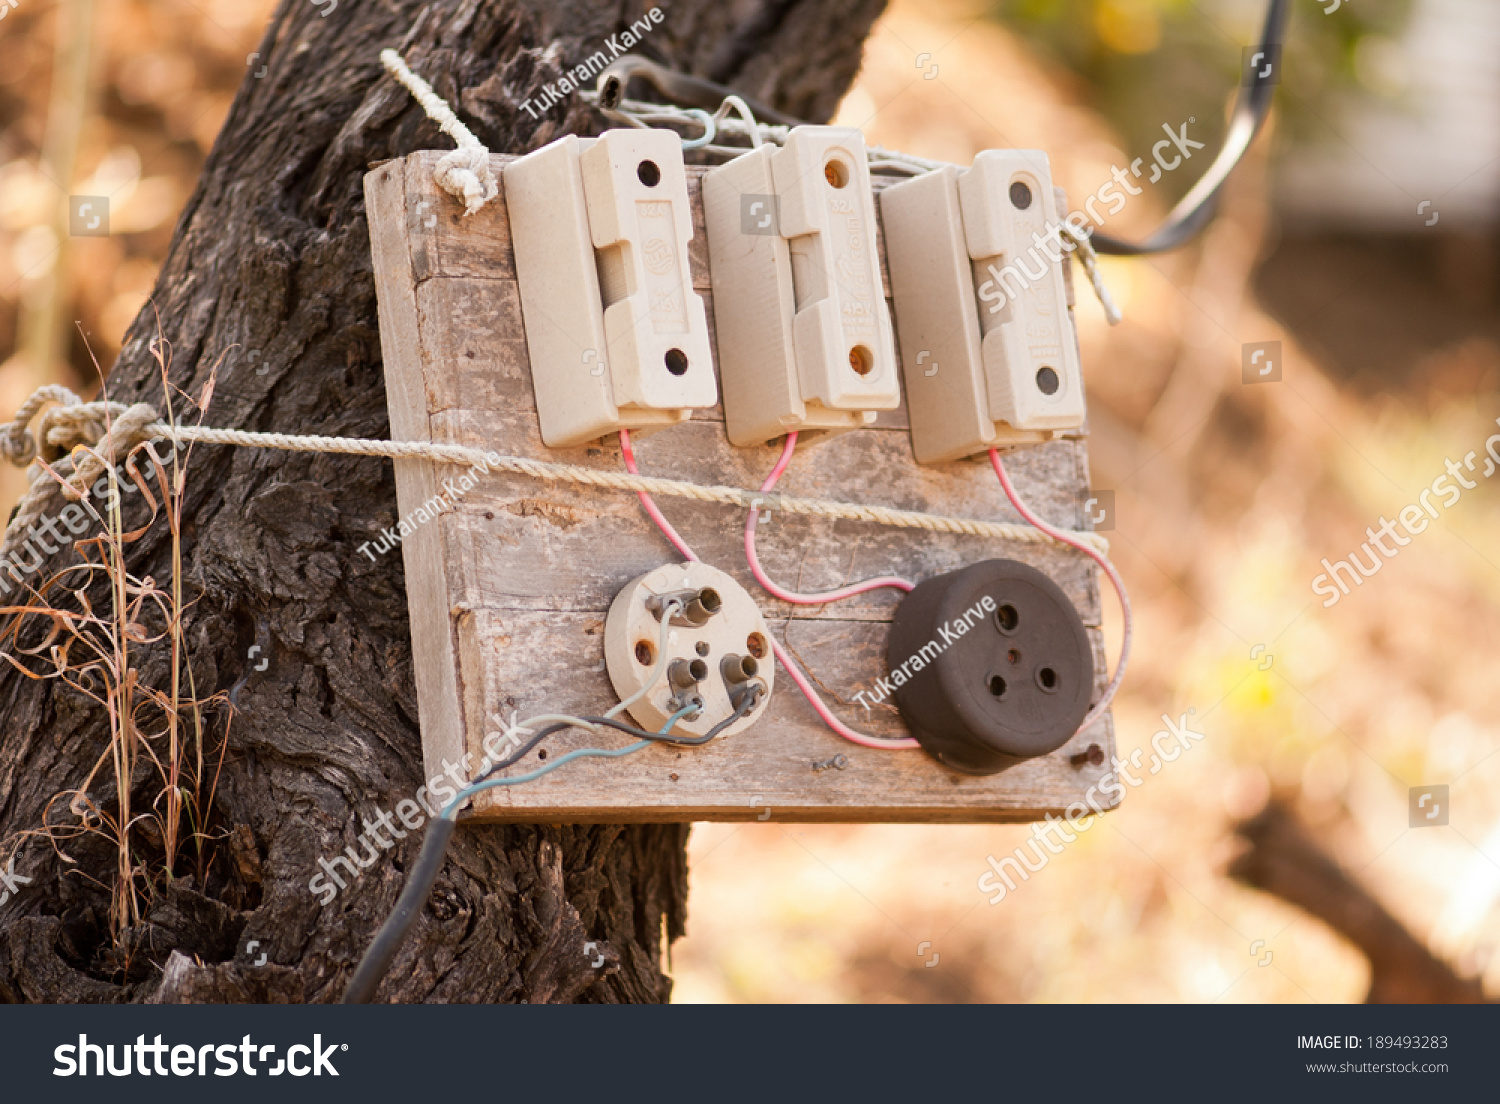 Old Electric Fuse box on tree, Maharashtra, India, south East Asia